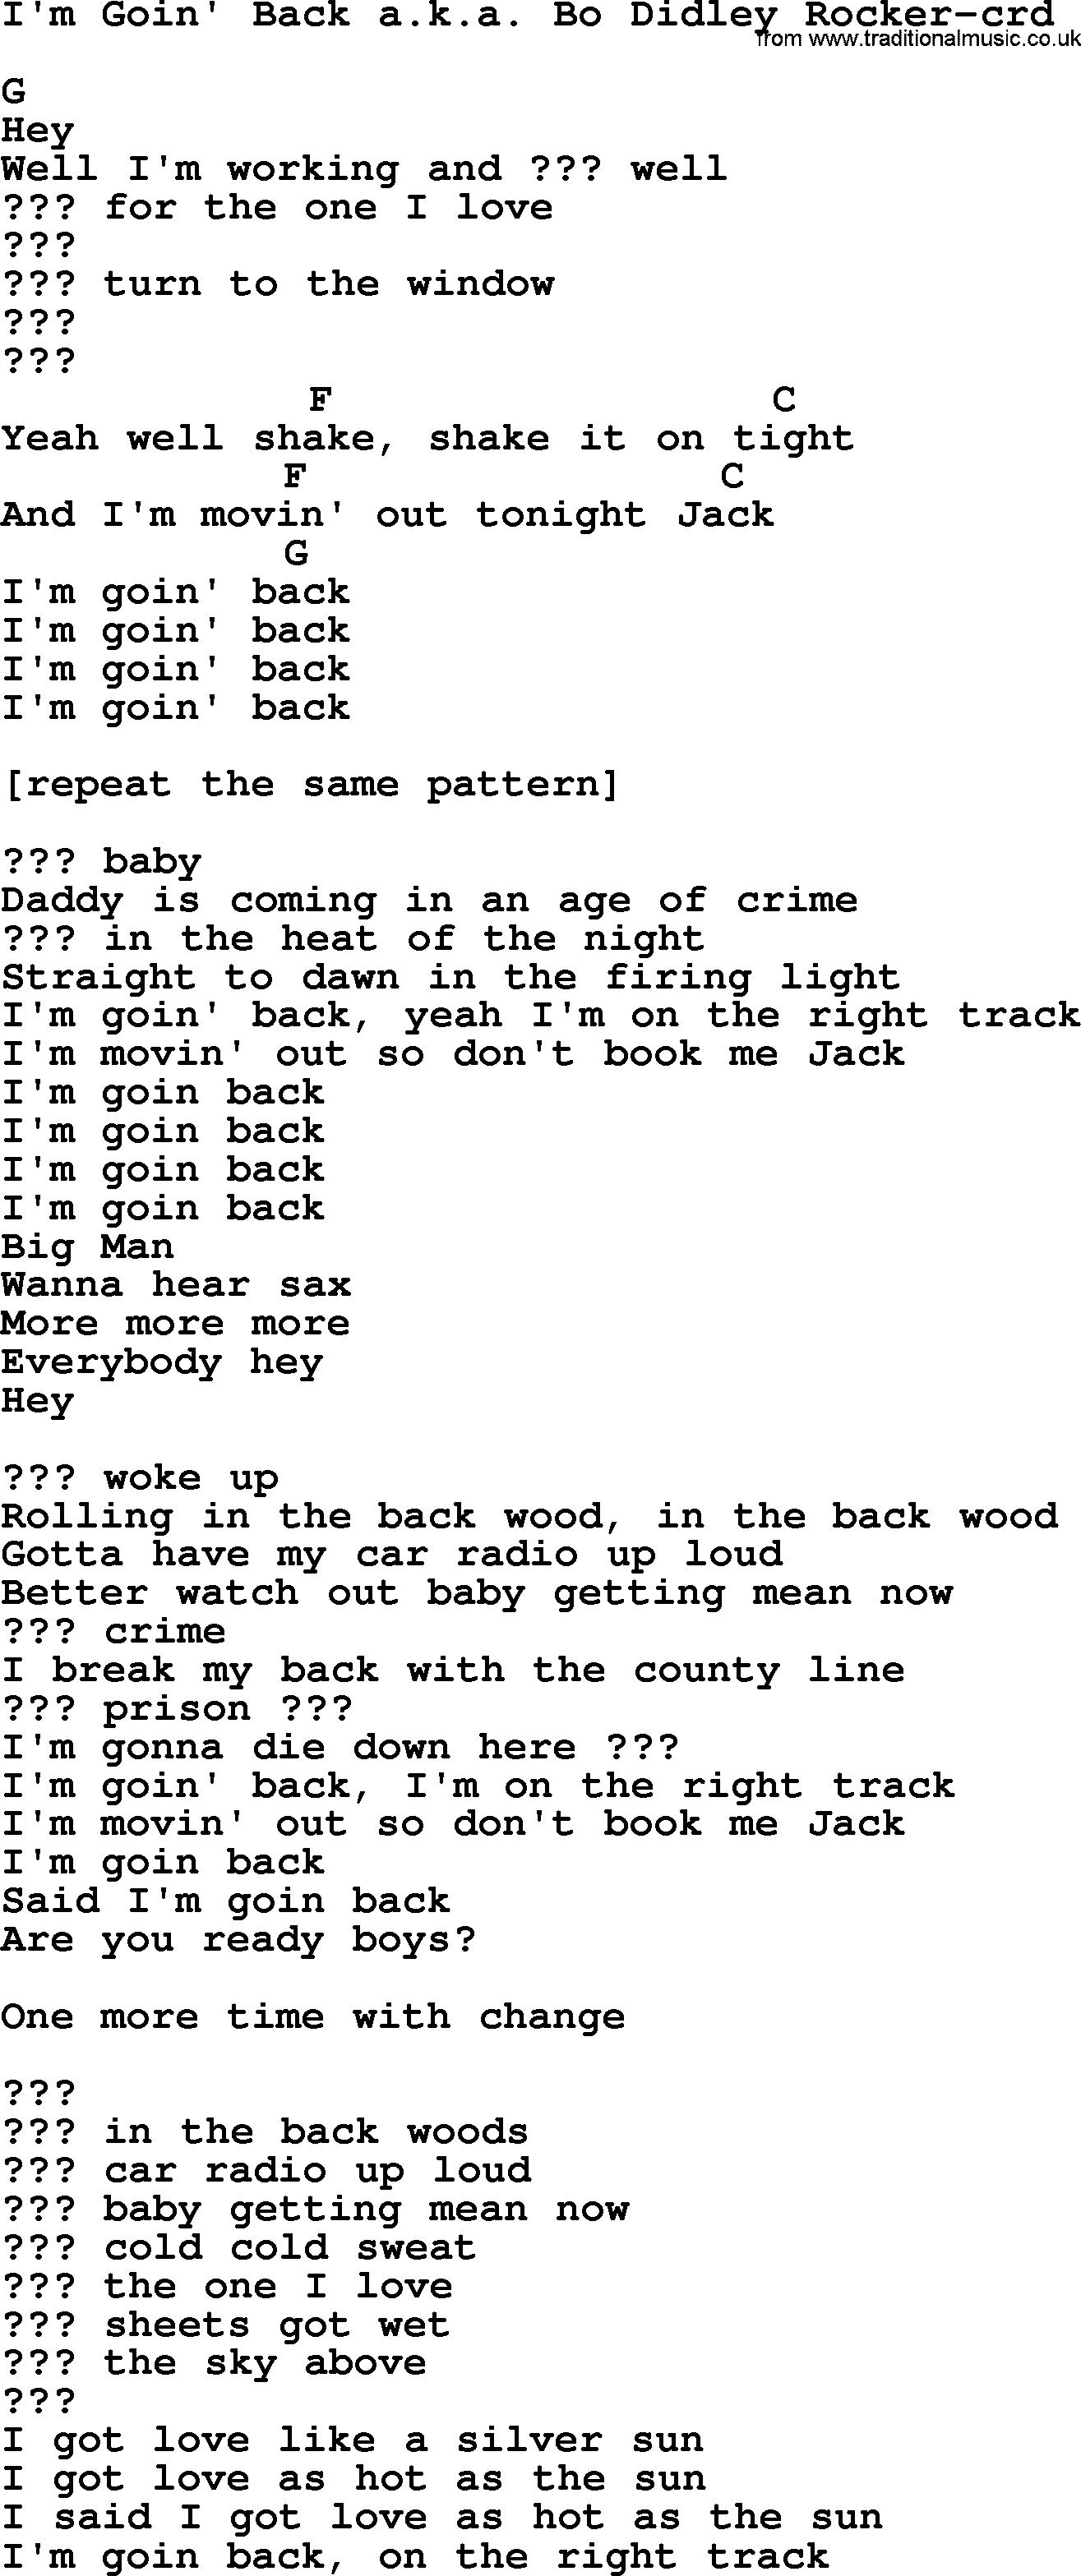 Bruce Springsteen Song Im Goin Back Aka Bo Didley Rocker Lyrics